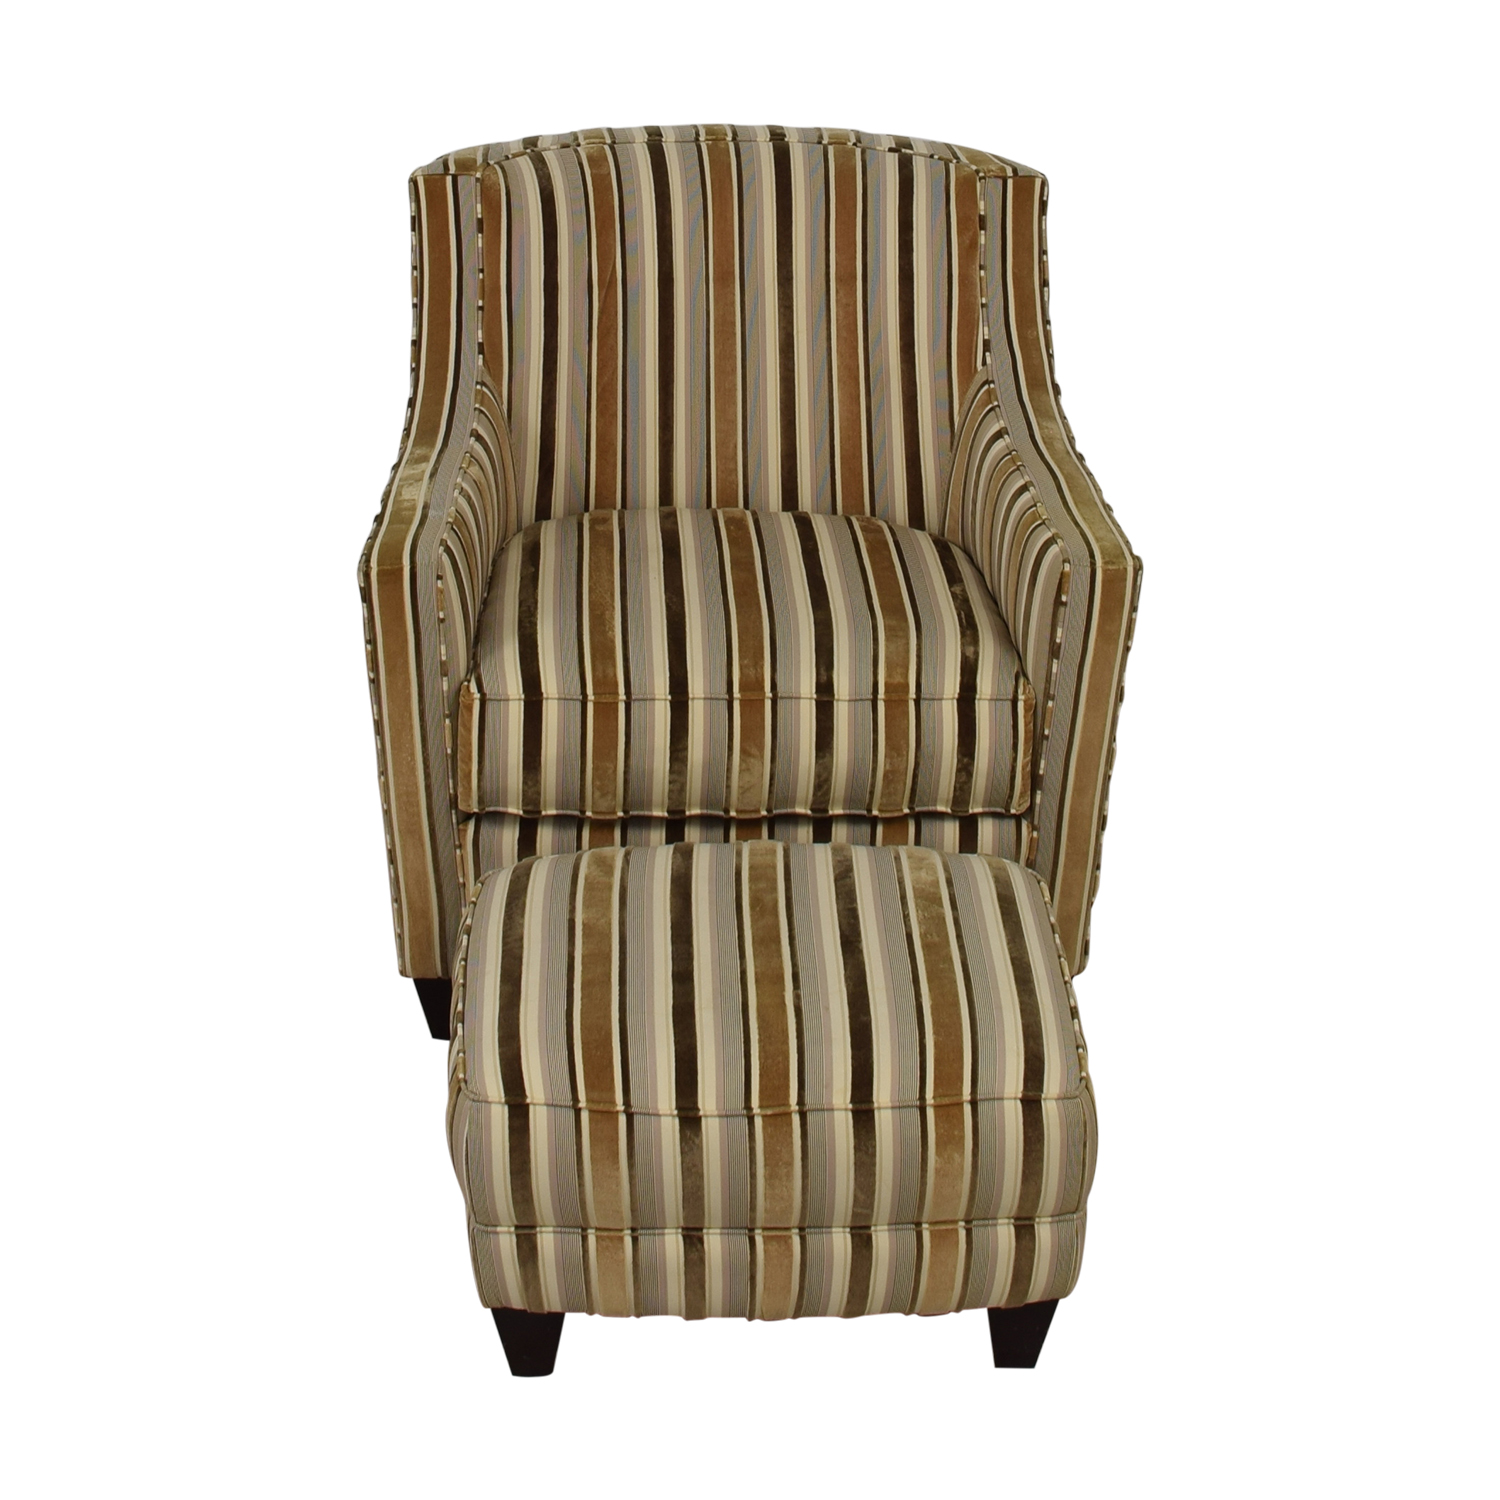 shop Robert Allen Beige and Brown Striped Accent Chair and Ottoman Robert Allen Chairs